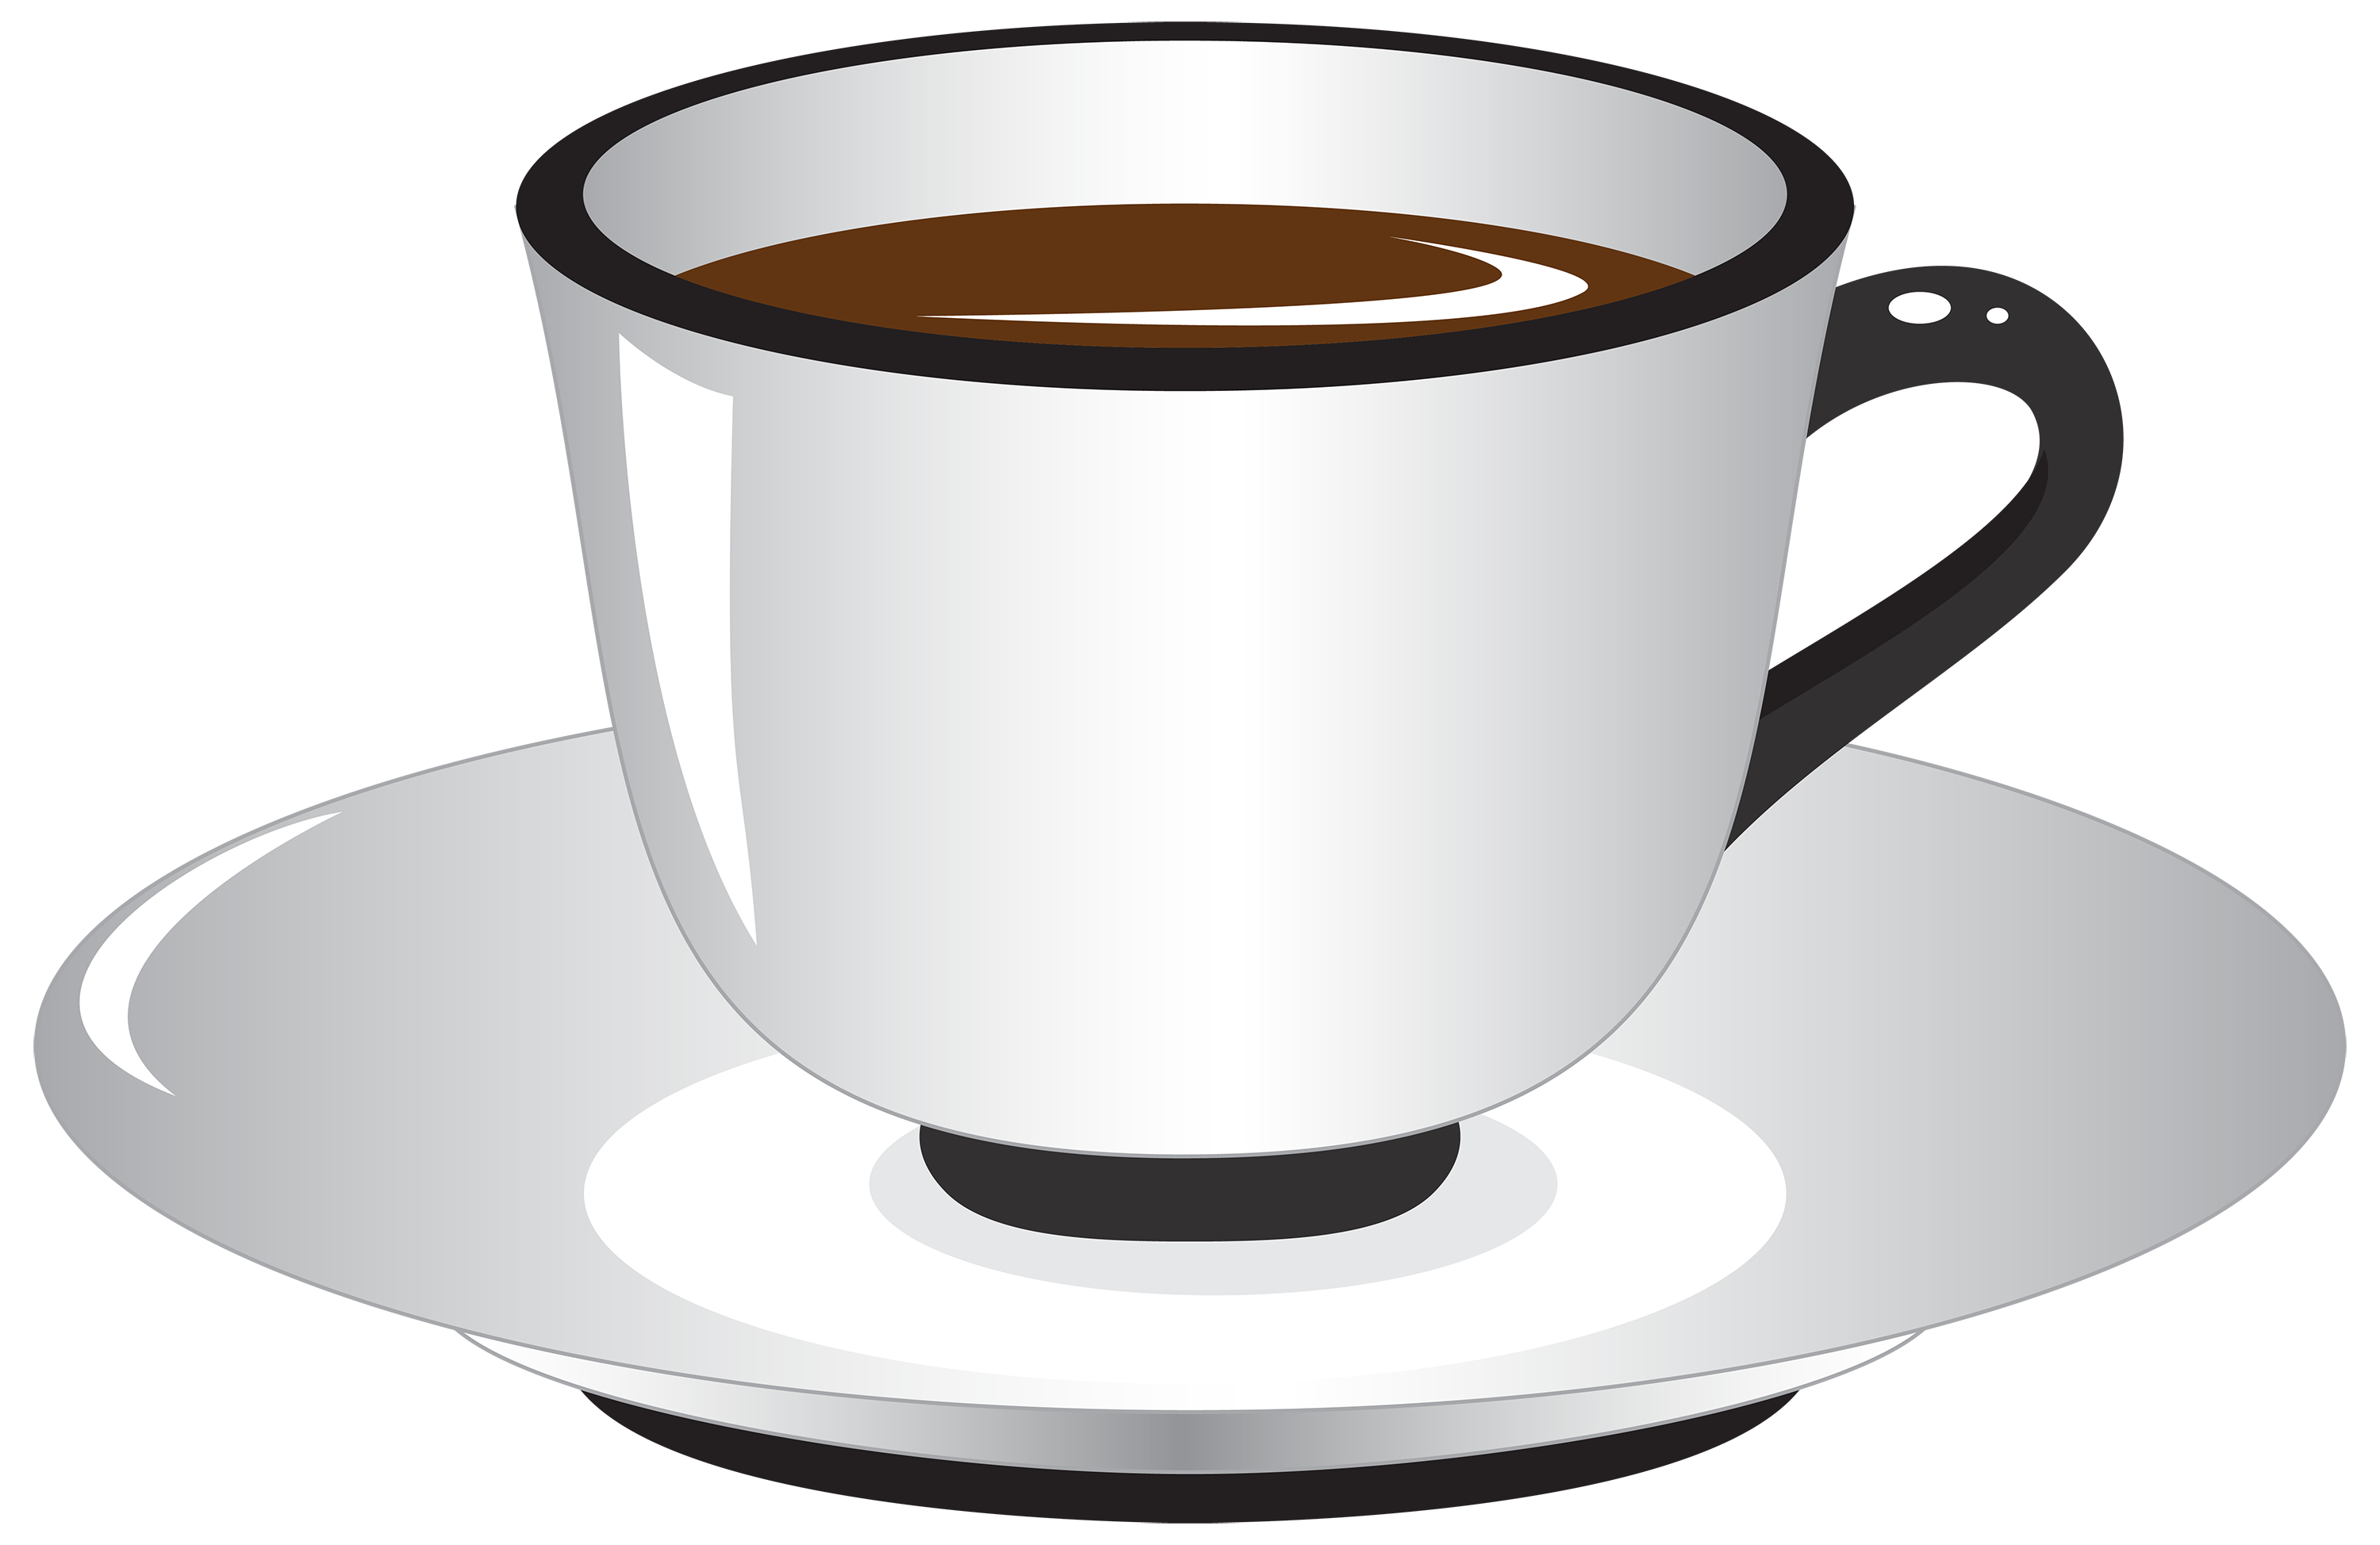 Coffee clipart png. White and black cup